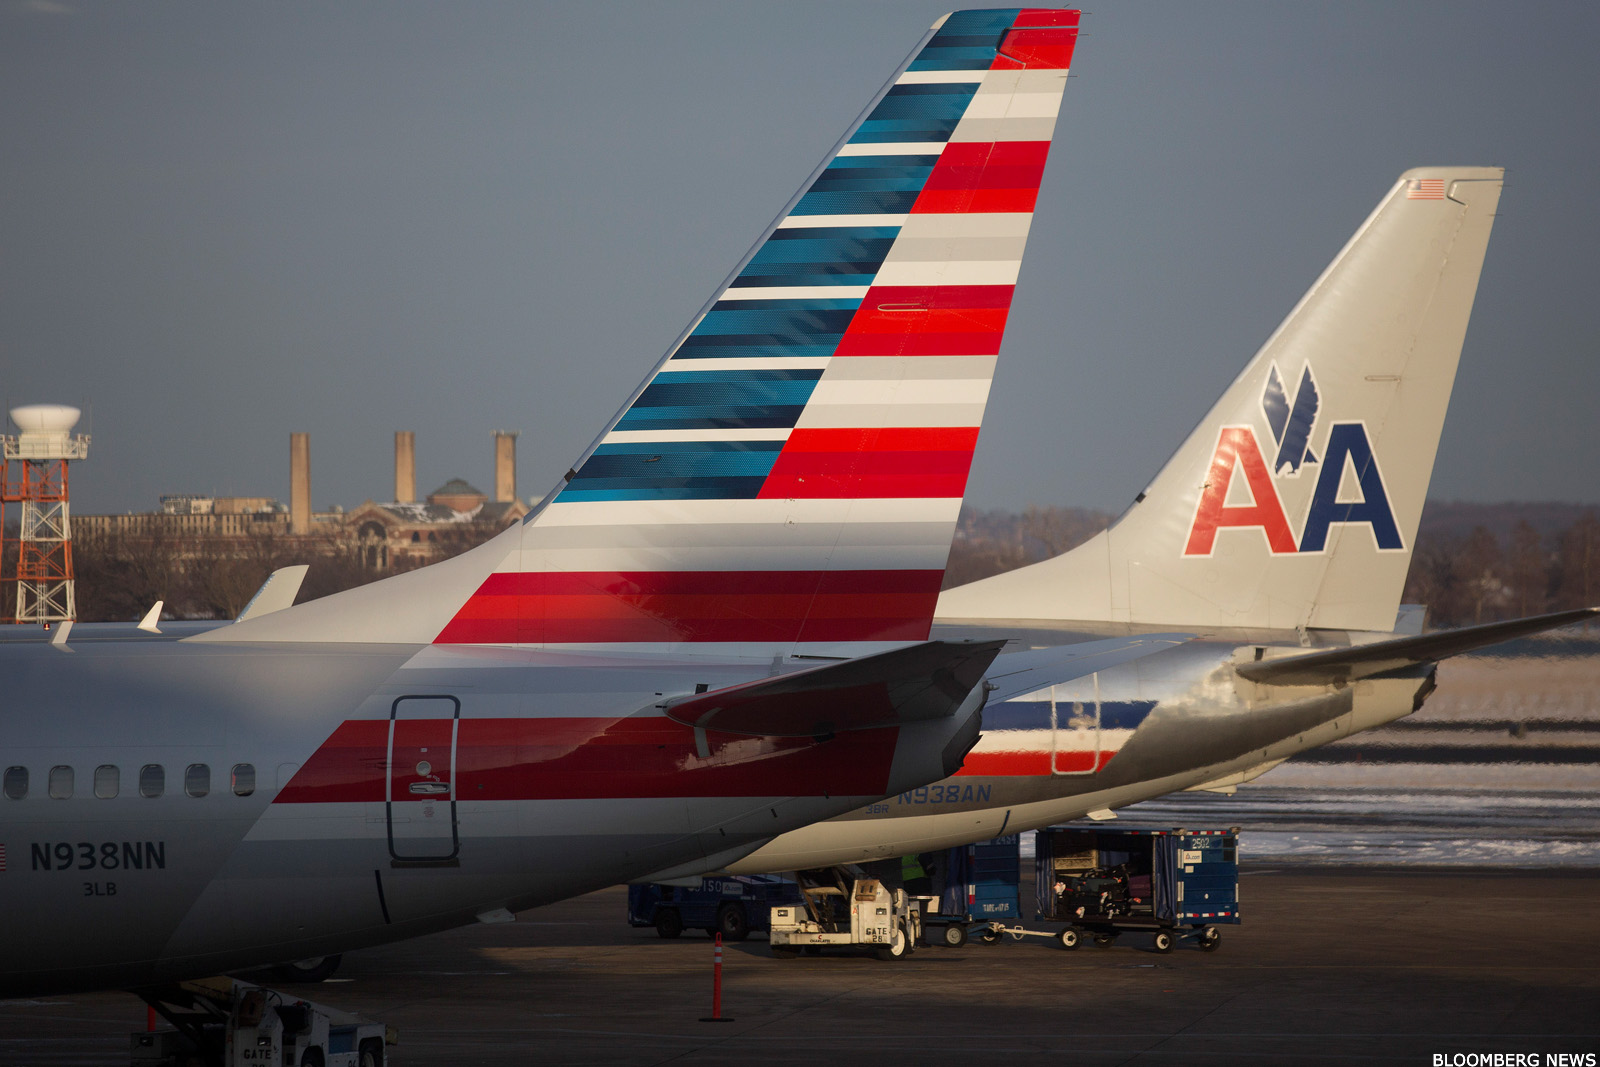 American Airlines Aal Stock Rises After Increased May